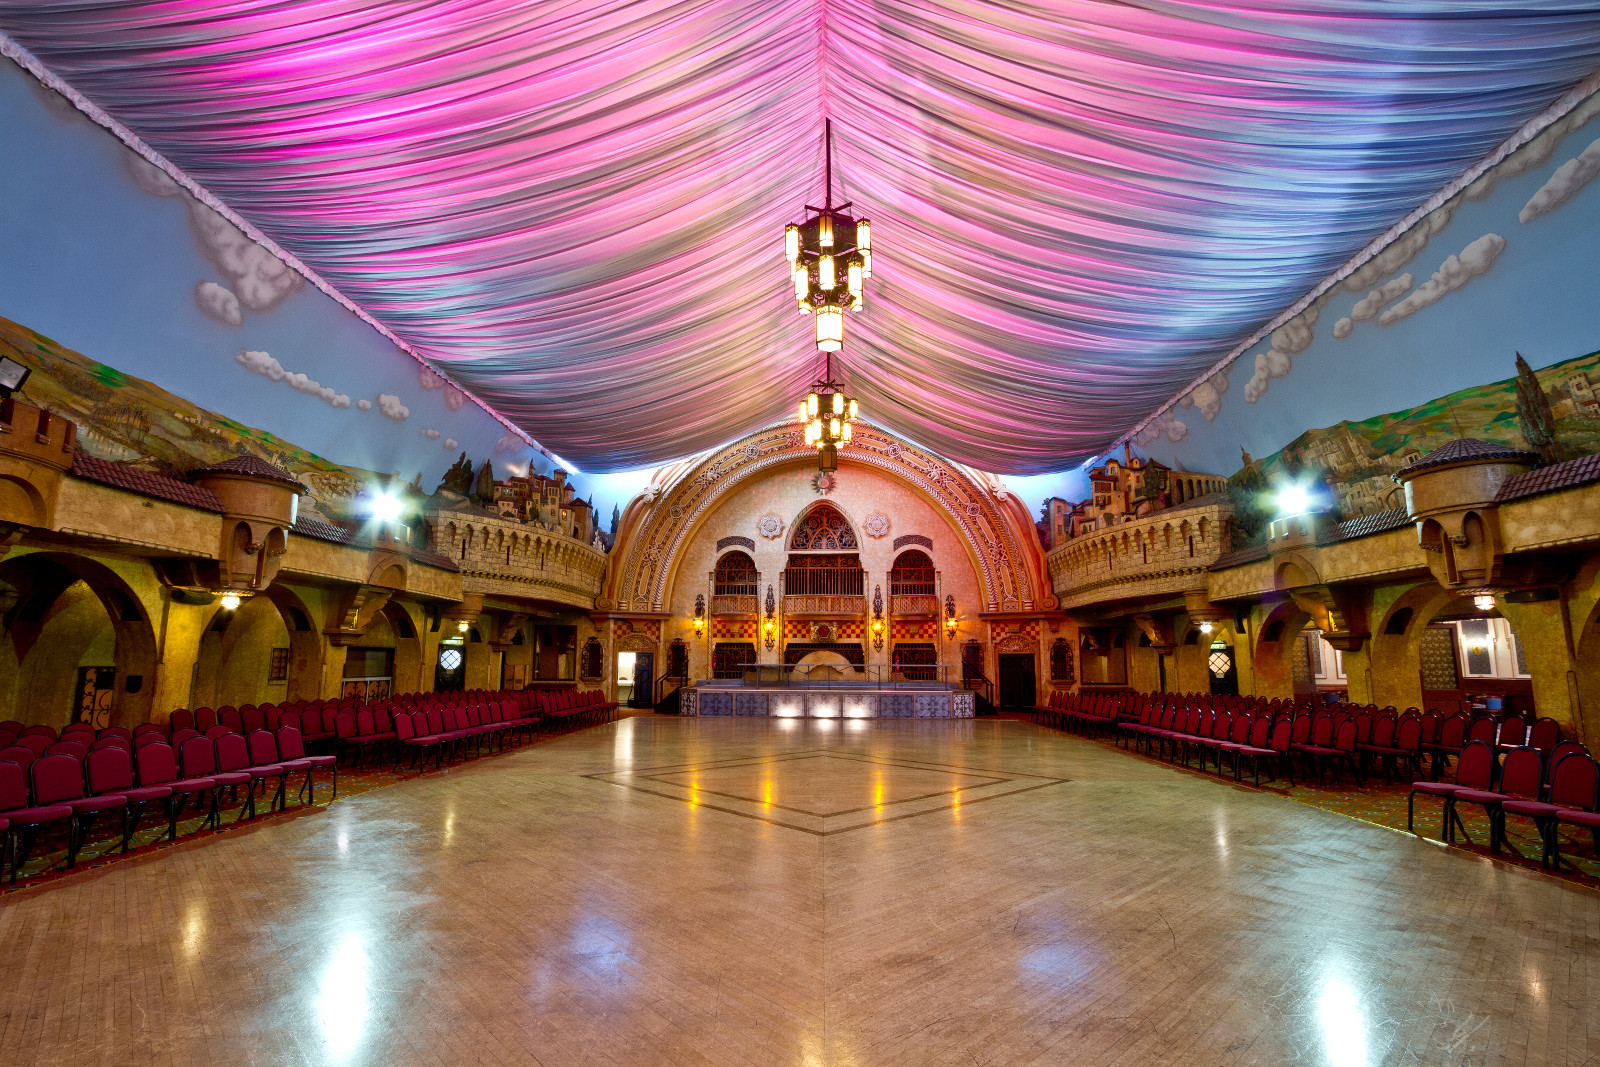 Spanish Hall inside the Winter Gardens, Blackpool, Lancashire, England